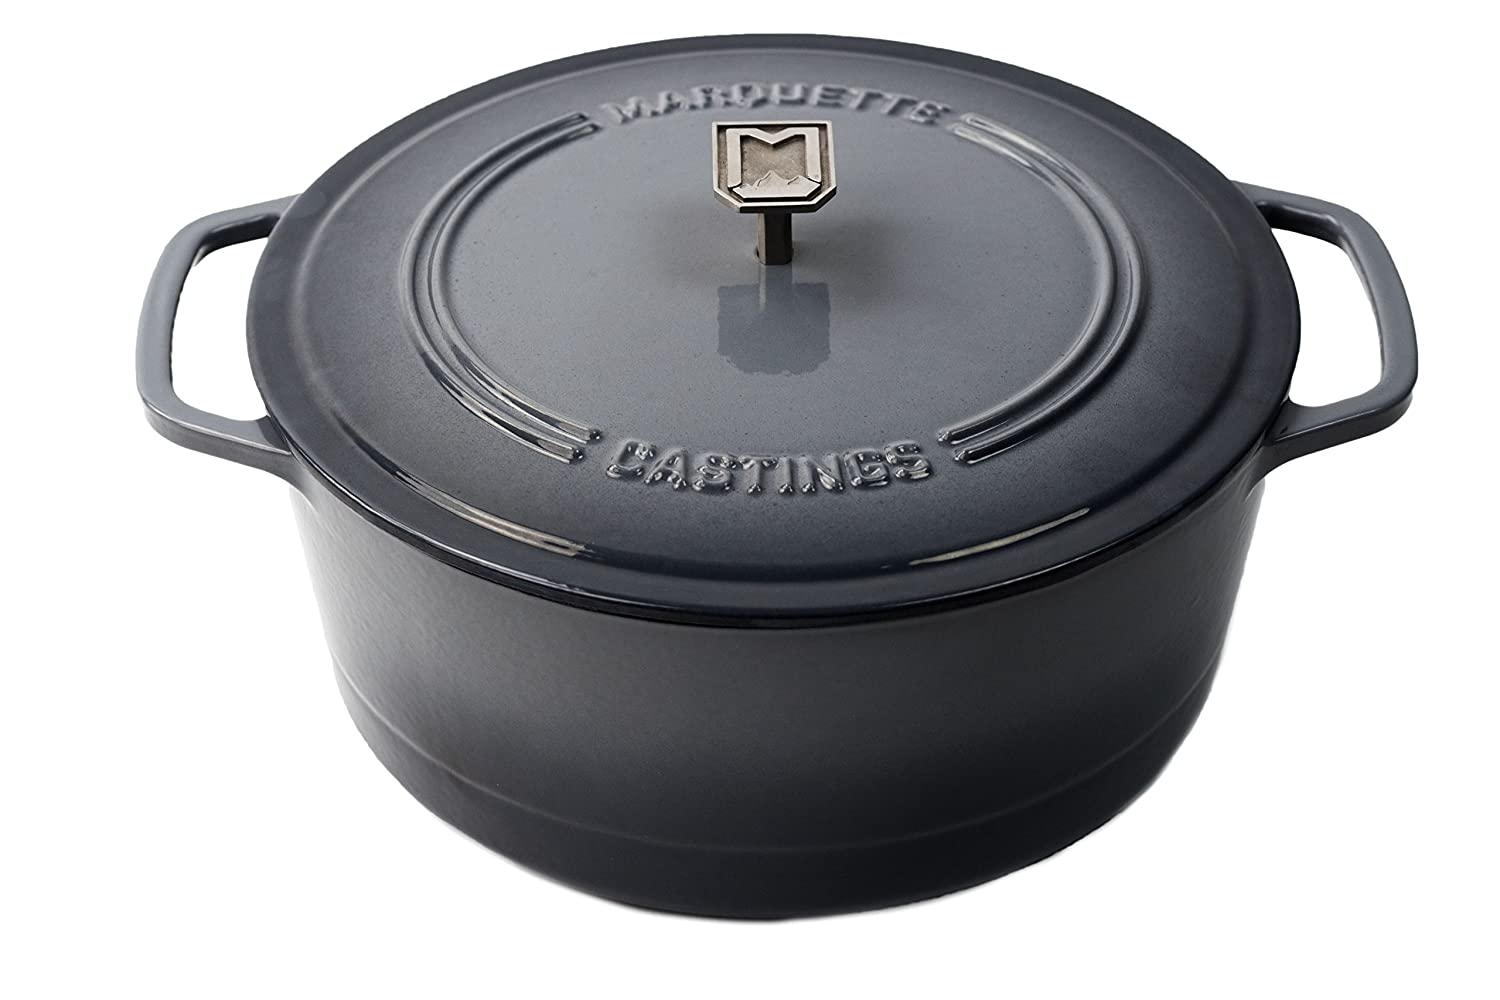 Marquette Castings 6 qt. Cast Iron Dutch Oven (Gray) SYNCHKG117421